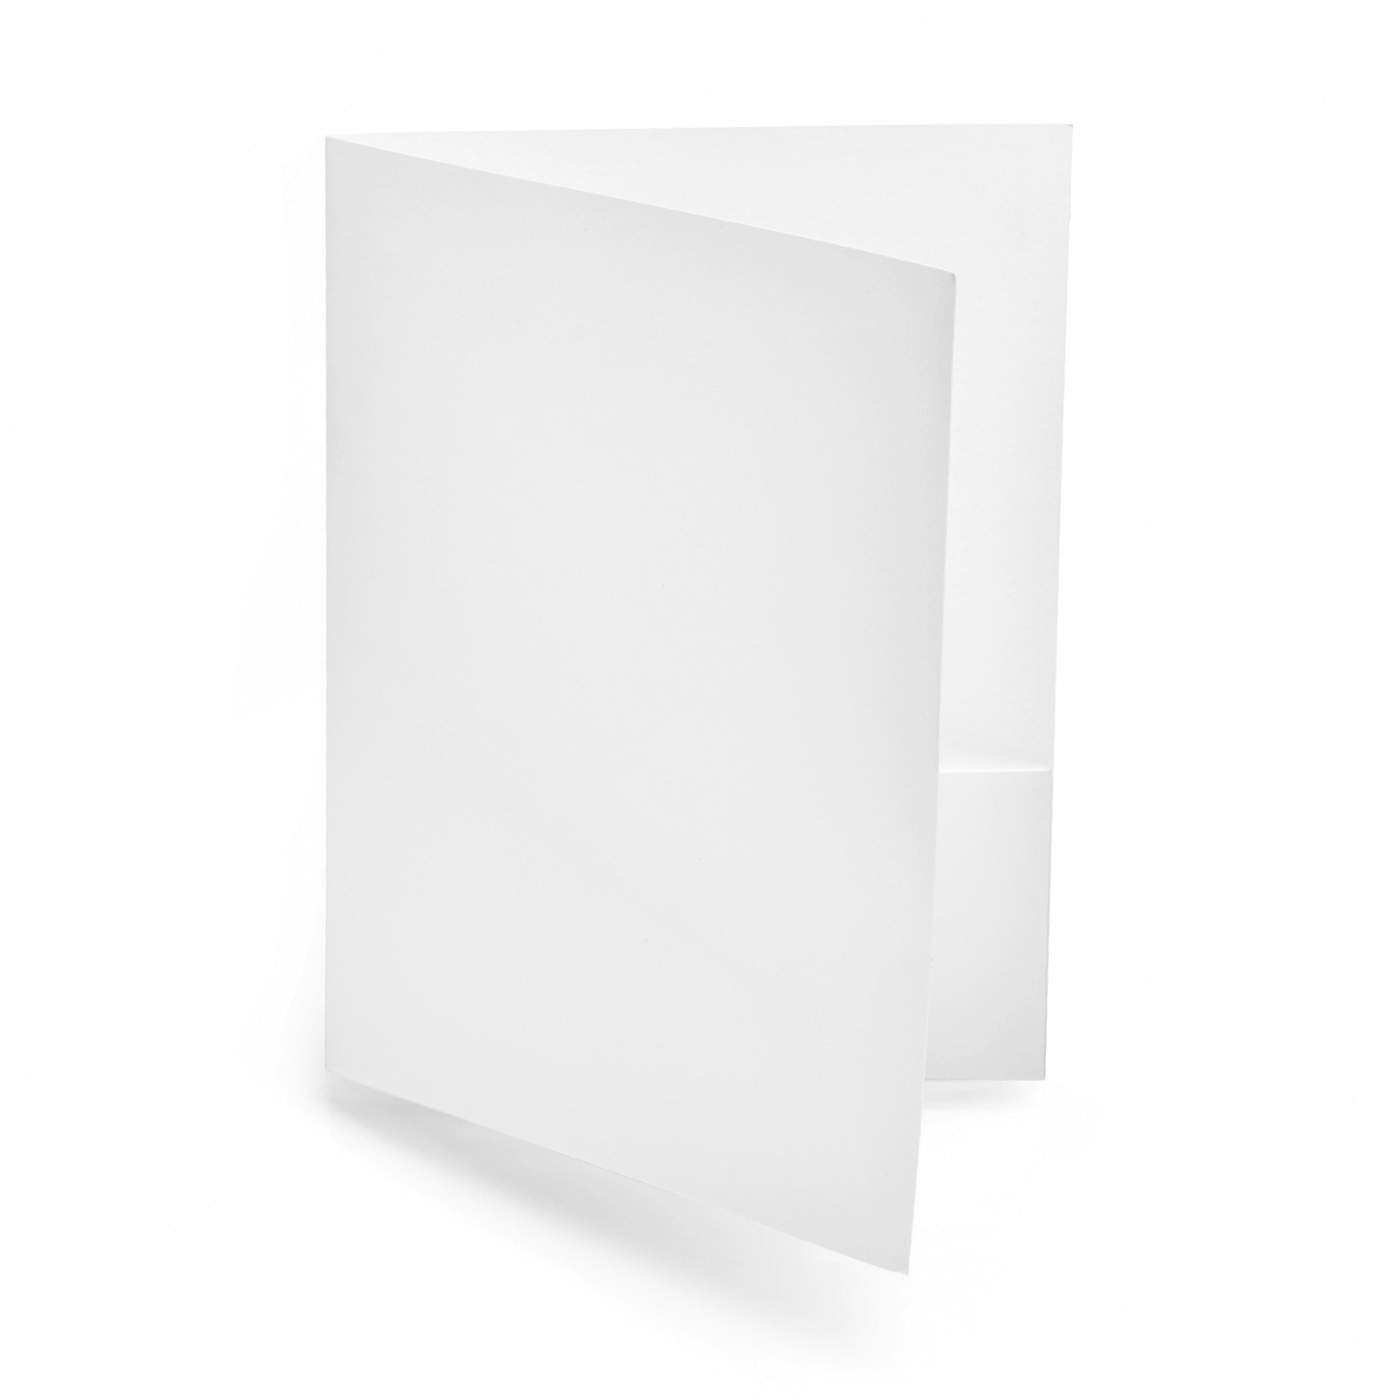 Blanks/USA Printable Folder Packet